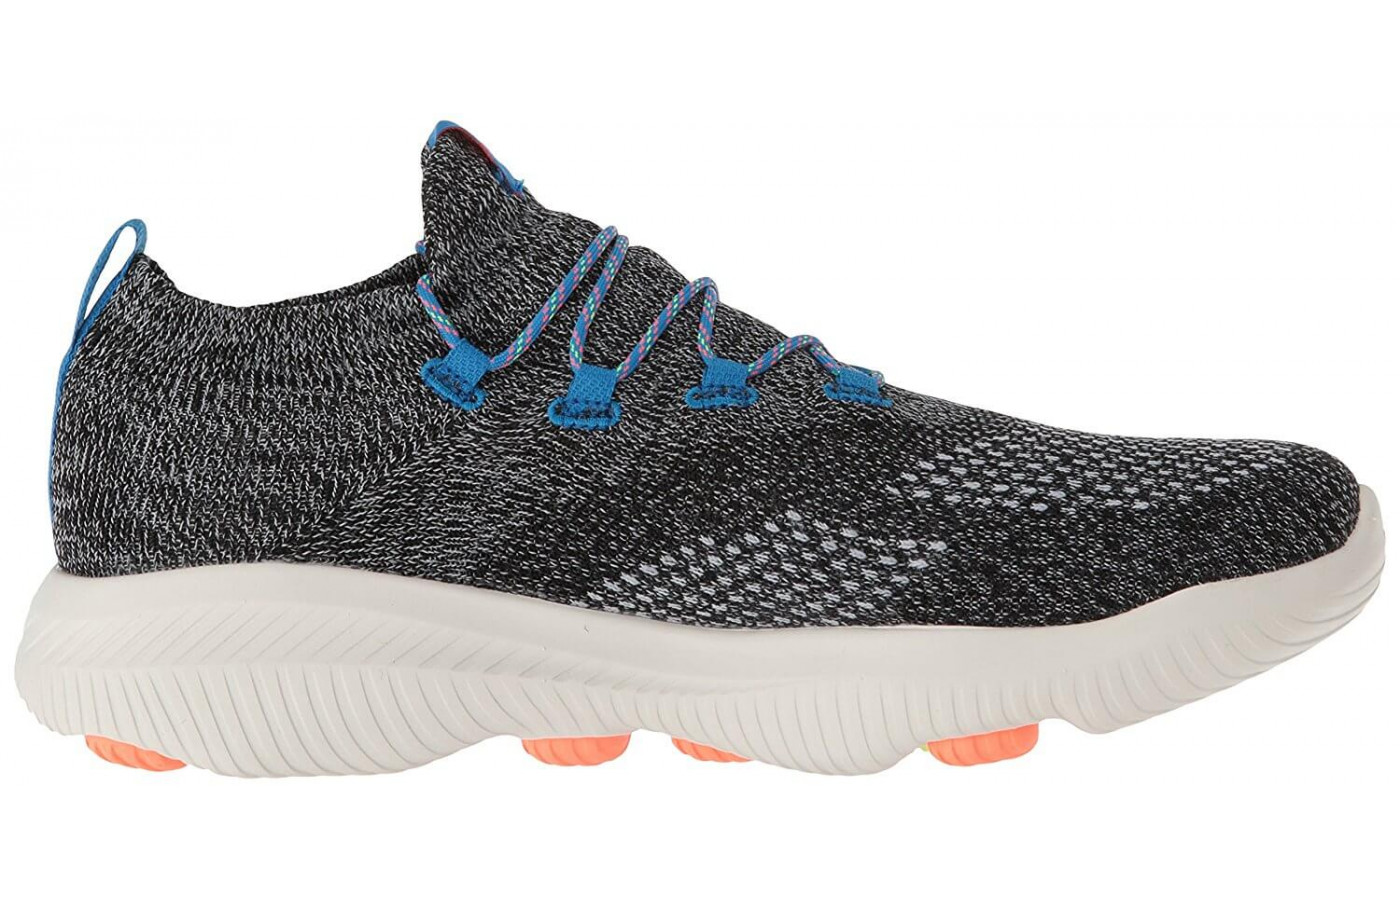 A side view of the Skechers GoWalk Revolution Ultra.